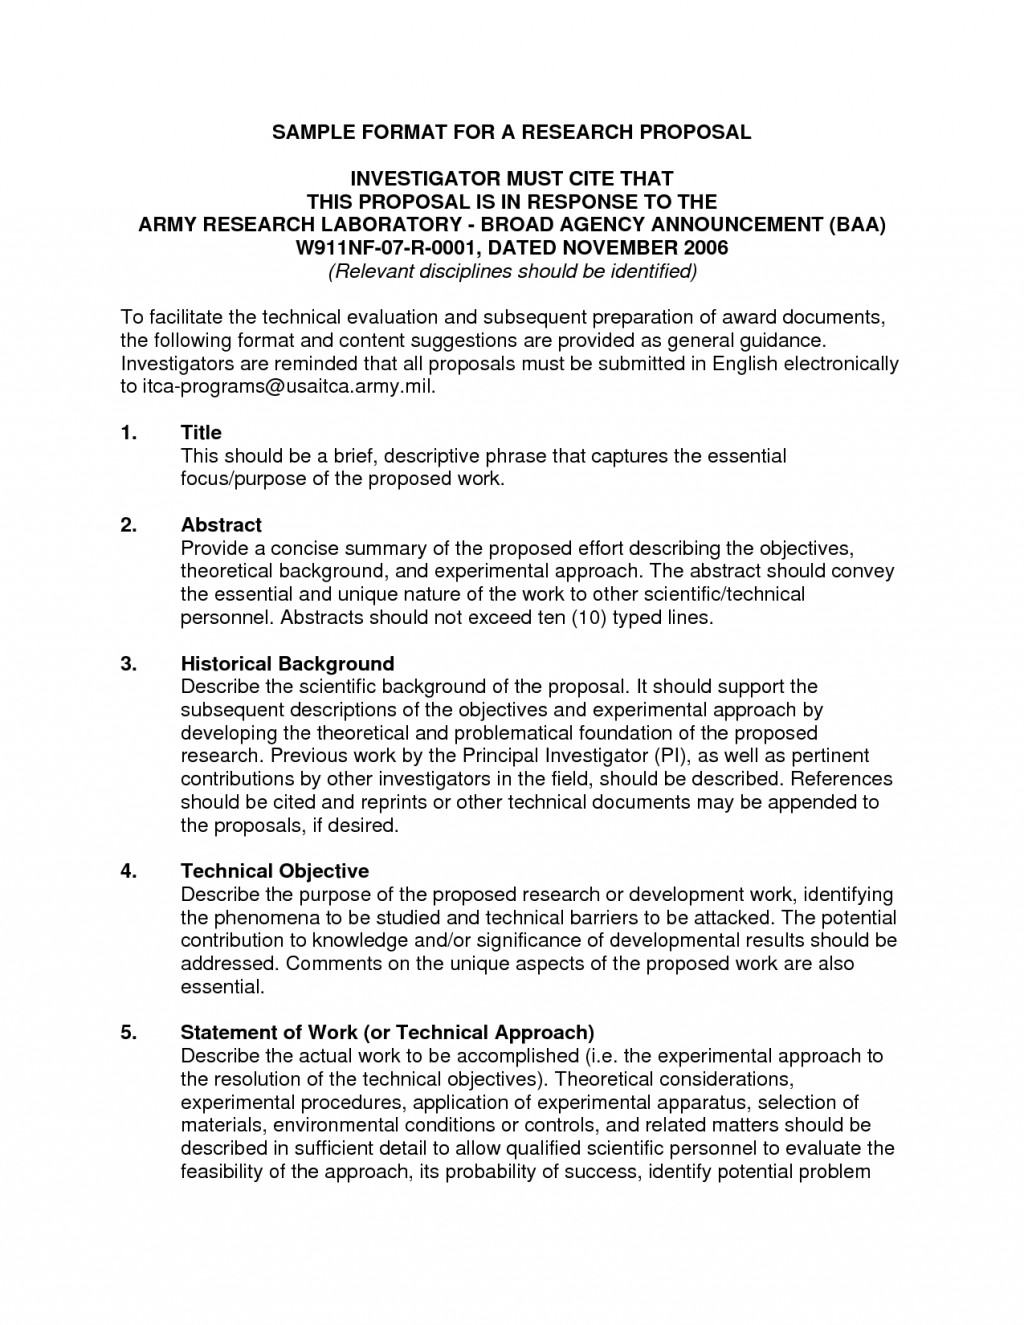 008 Research Proposal Template Qicmwzxw Essay Example Wondrous Internet Privacy Introduction Censorship Topics Chatting In Urdu Large